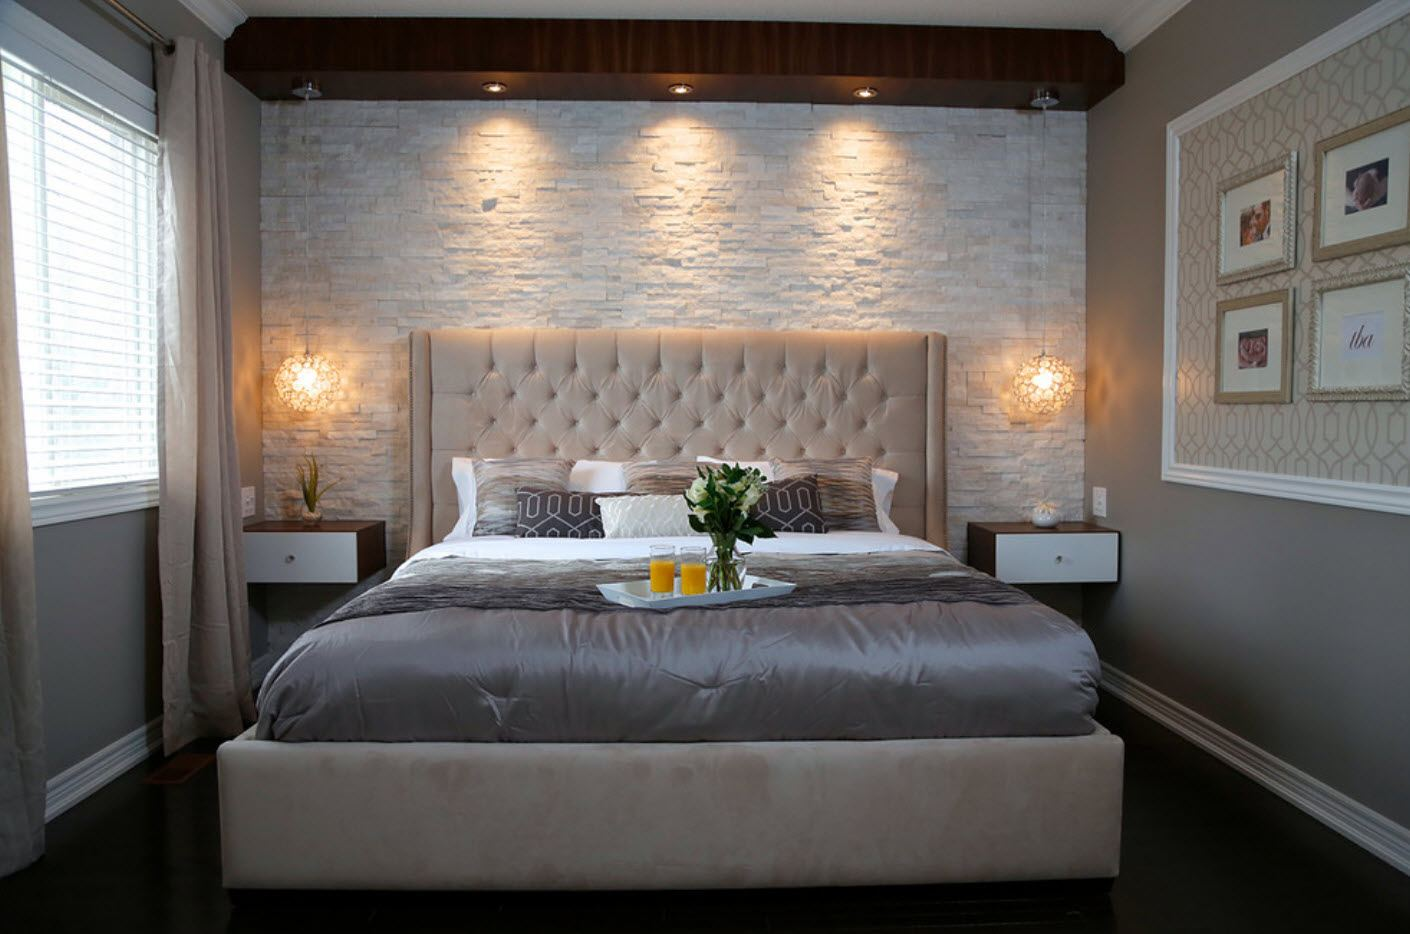 140 Square Feet Bedroom Interior Decoration: Examples for every Budget. Gray toned atmosphere of the modern bedroom with quilted headboard and textured wall behind it